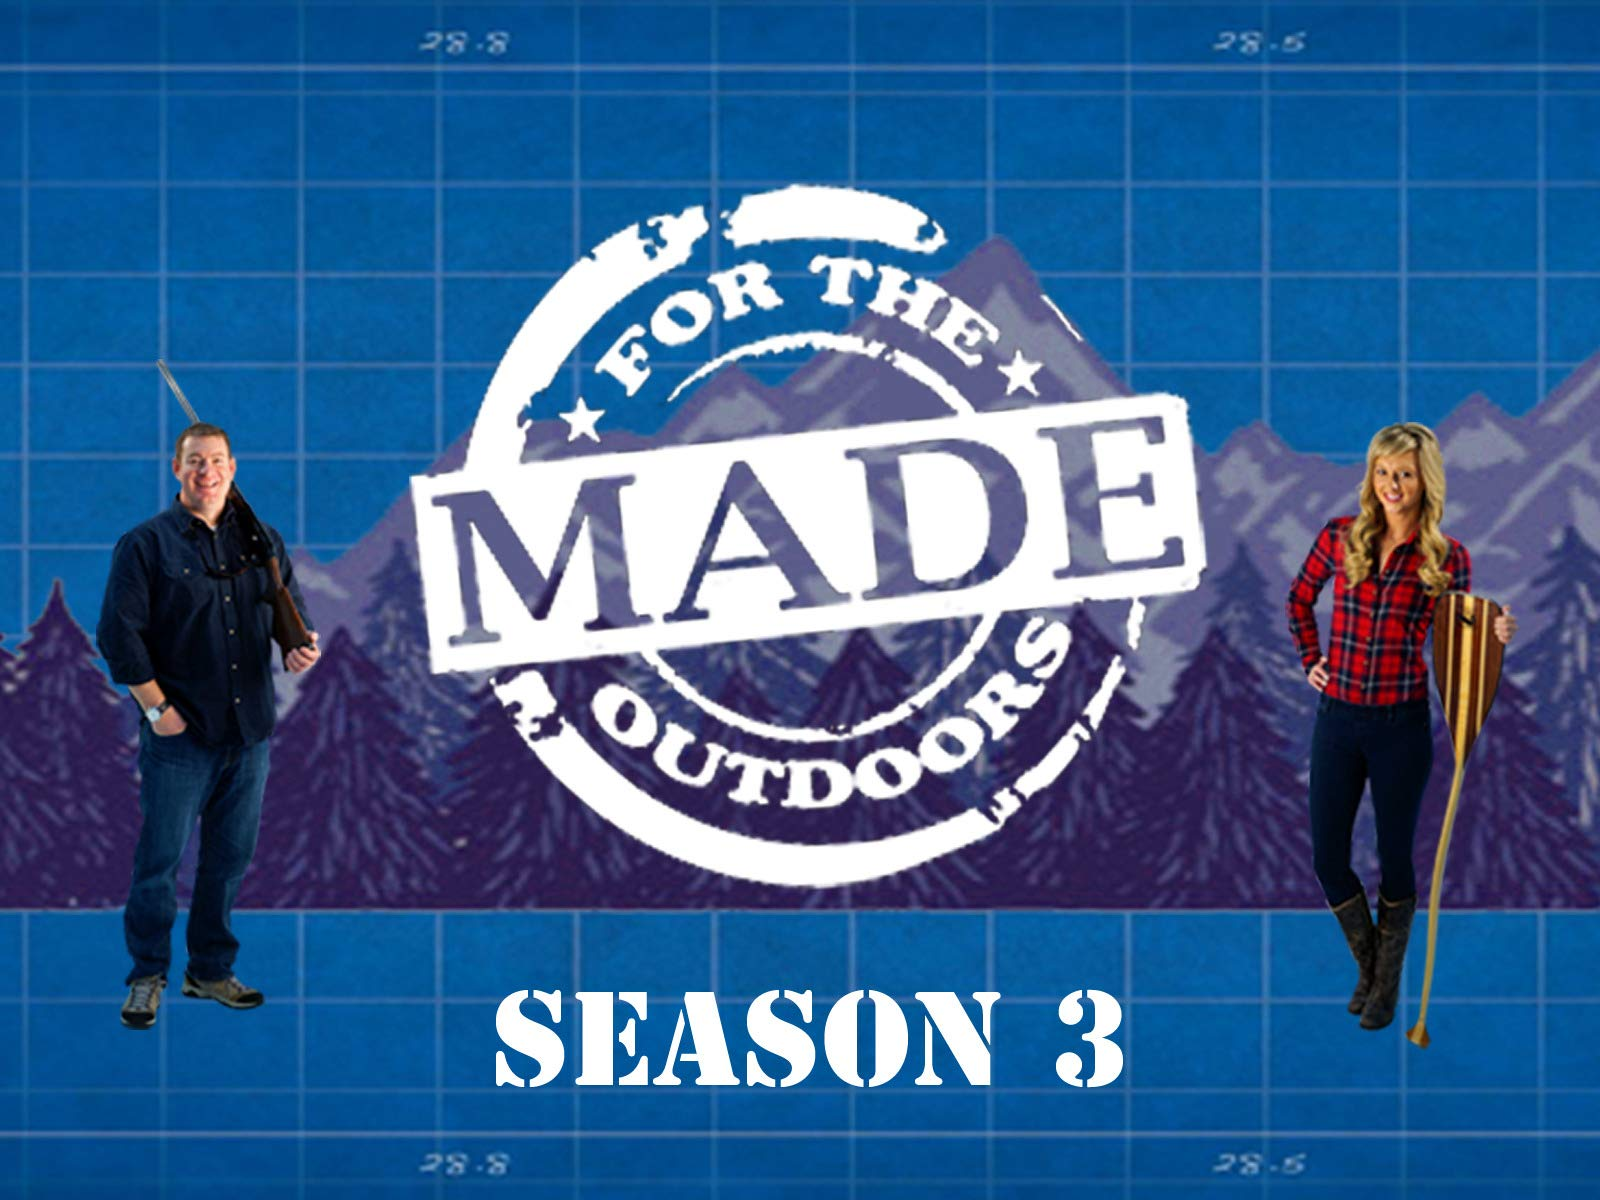 Made For The Outdoors - Season 3